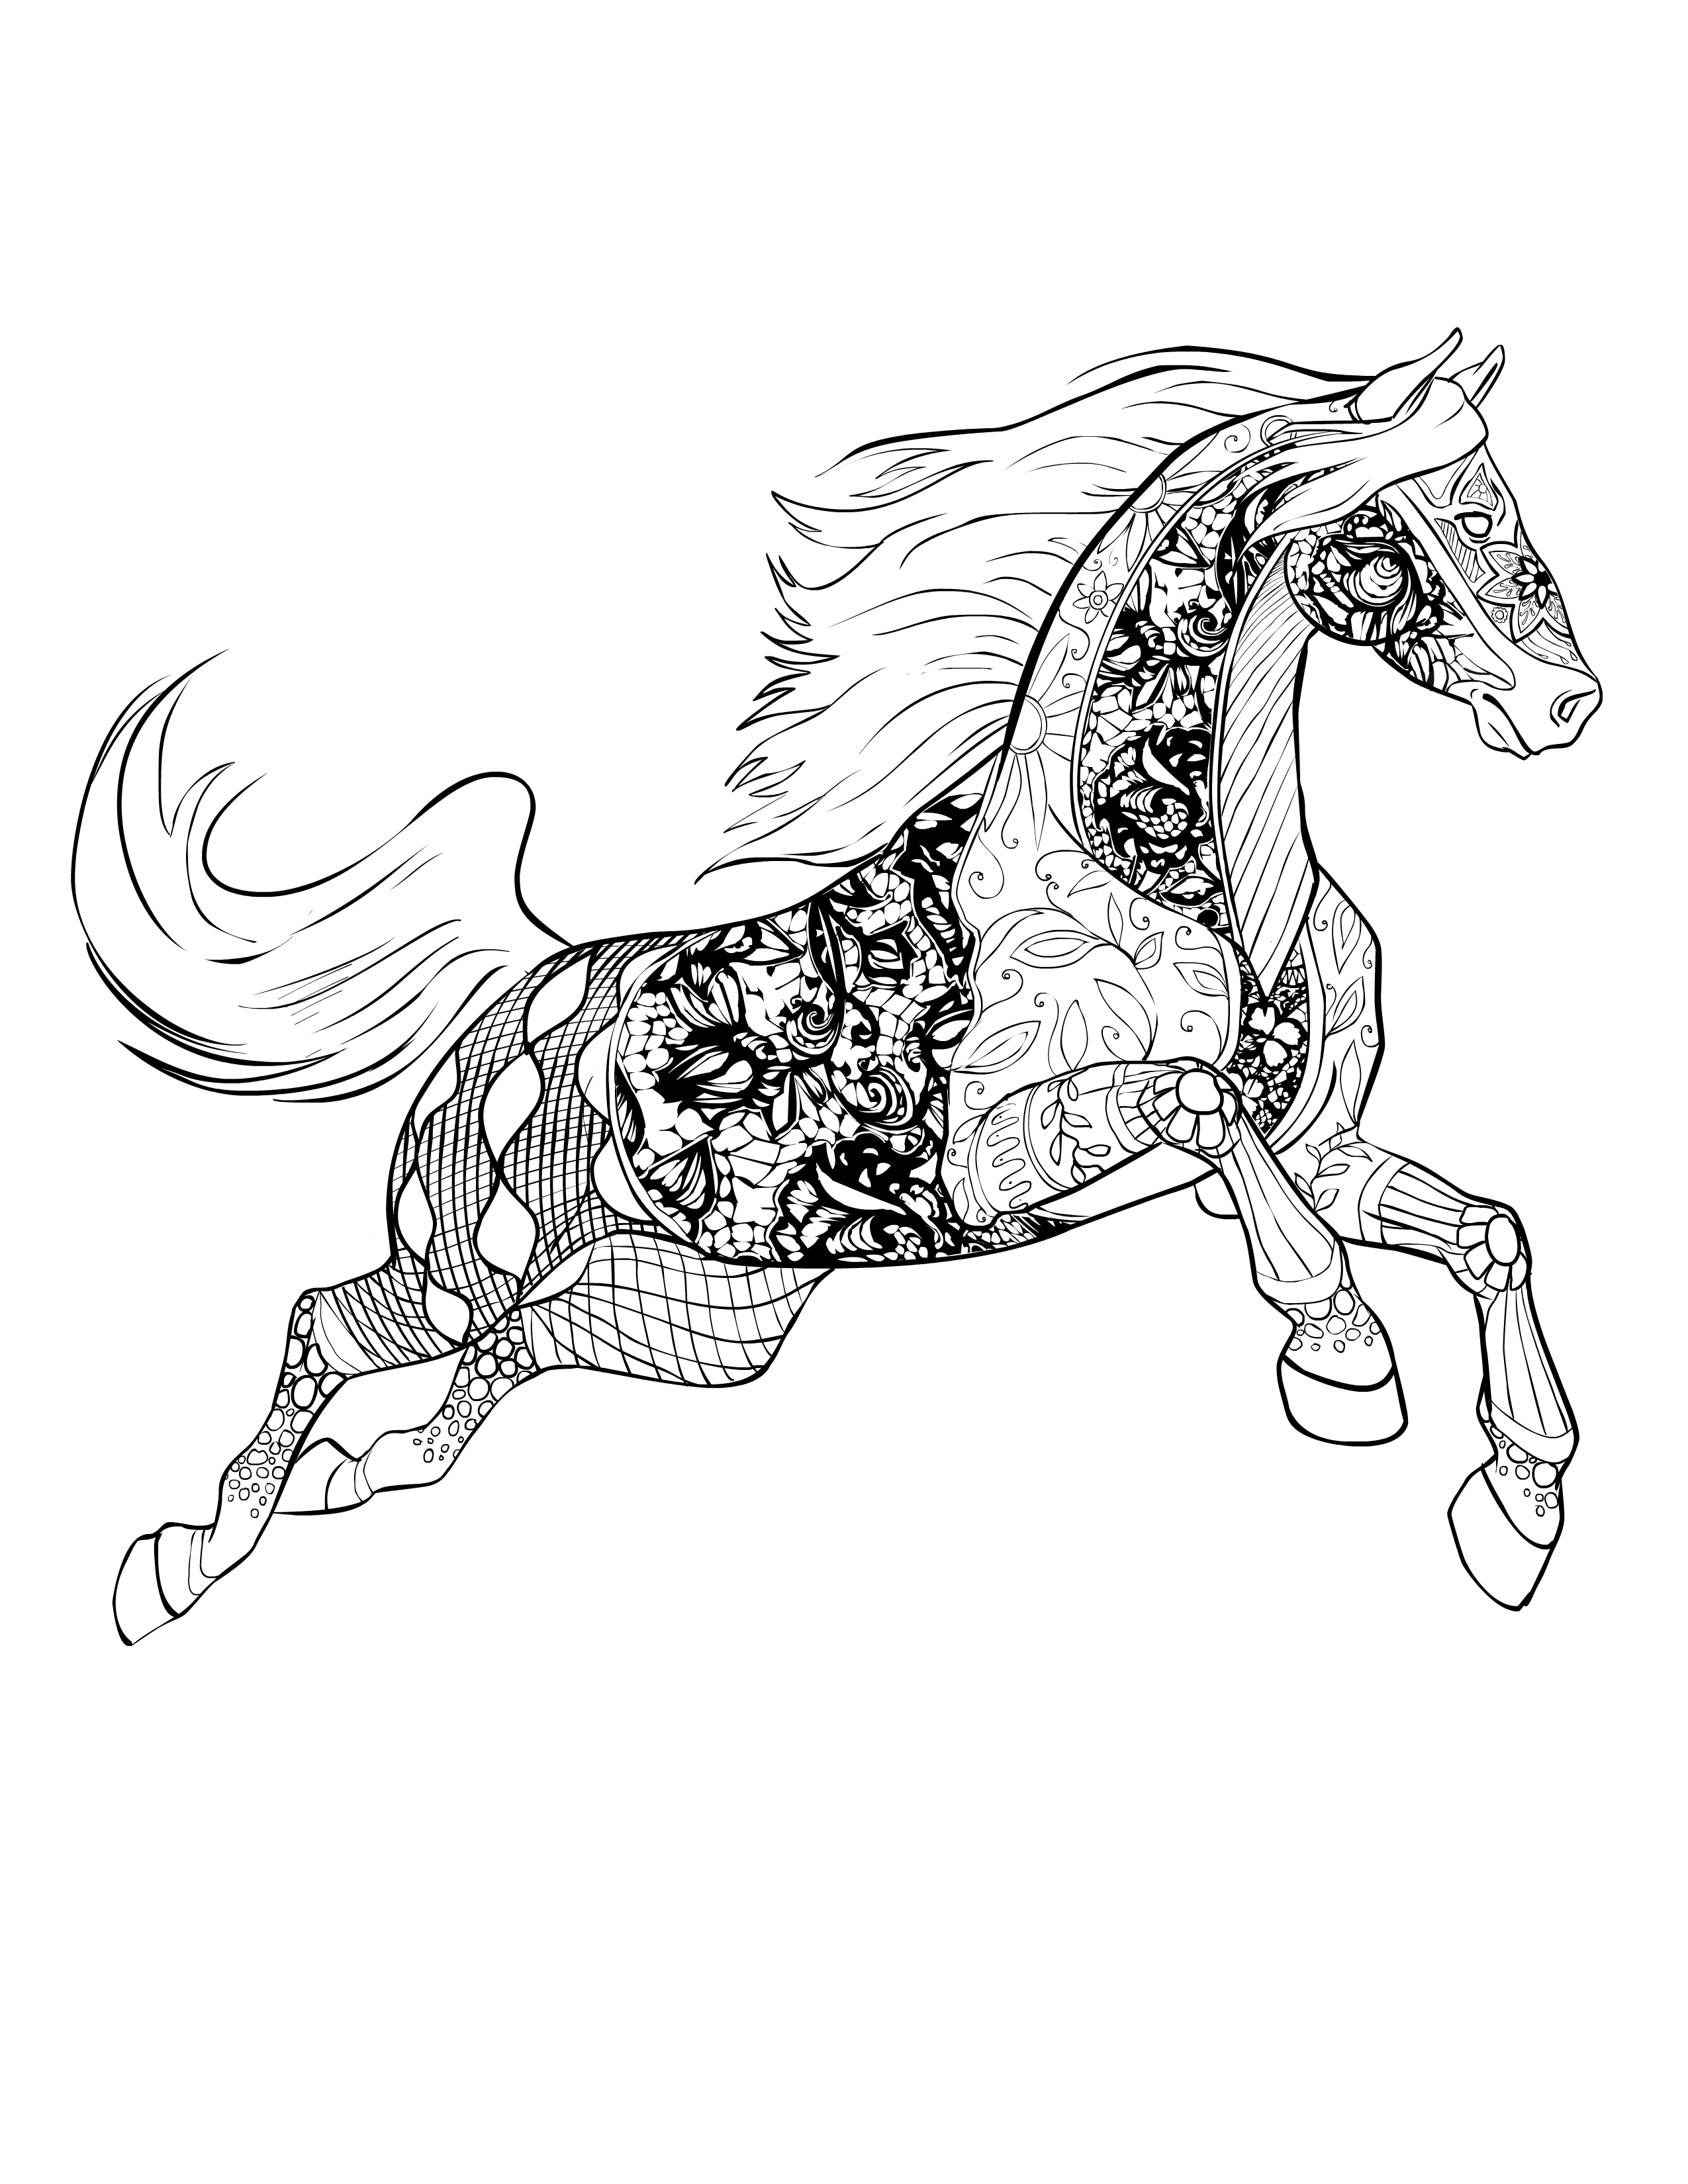 Zentangle Horse Coloring Pages At Getdrawings Com Free For